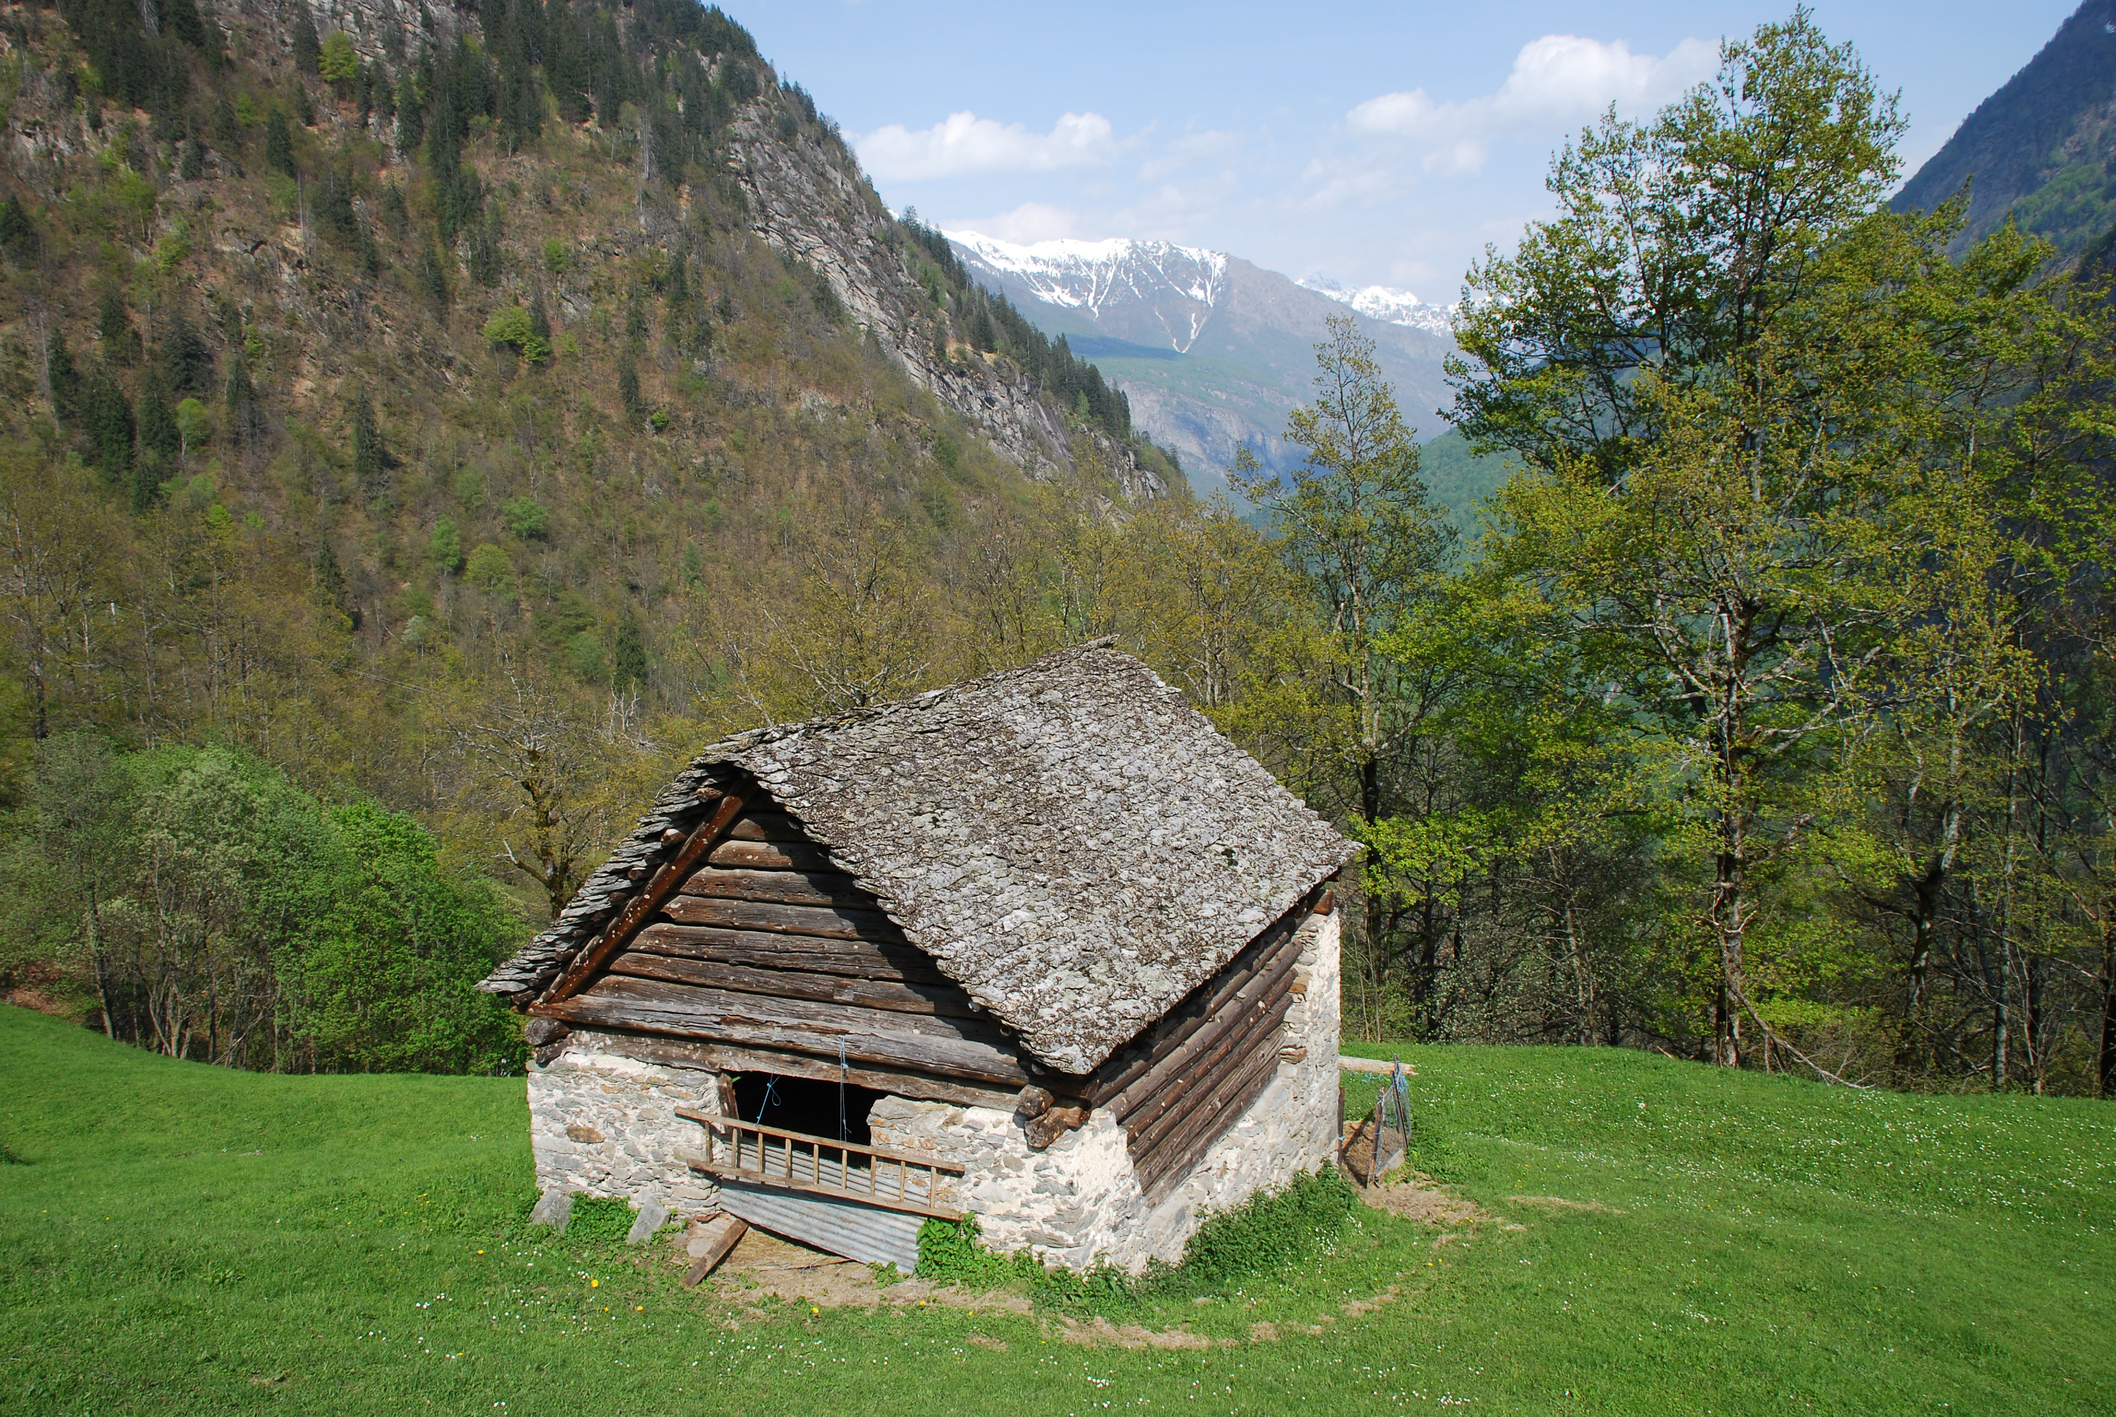 Animal-house-and-Bosco-Gurin-Valley-seen-from-Cerentino-119350557_2118x1418.jpeg